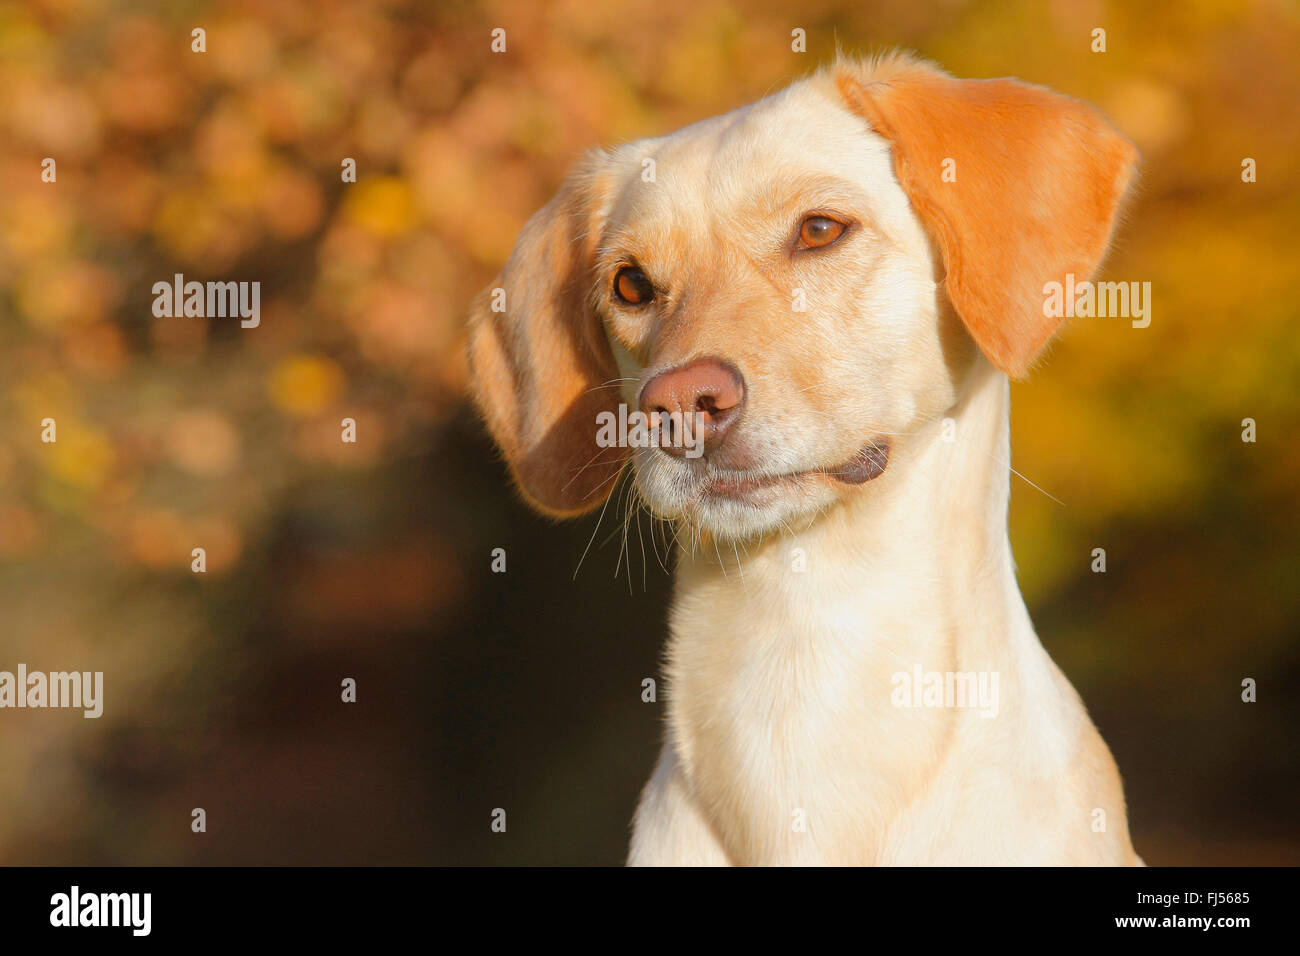 mixed breed dog (Canis lupus f. familiaris), Labrador Magyar Vizsla mixed breed dog in autumn, portrait, Germany - Stock Image